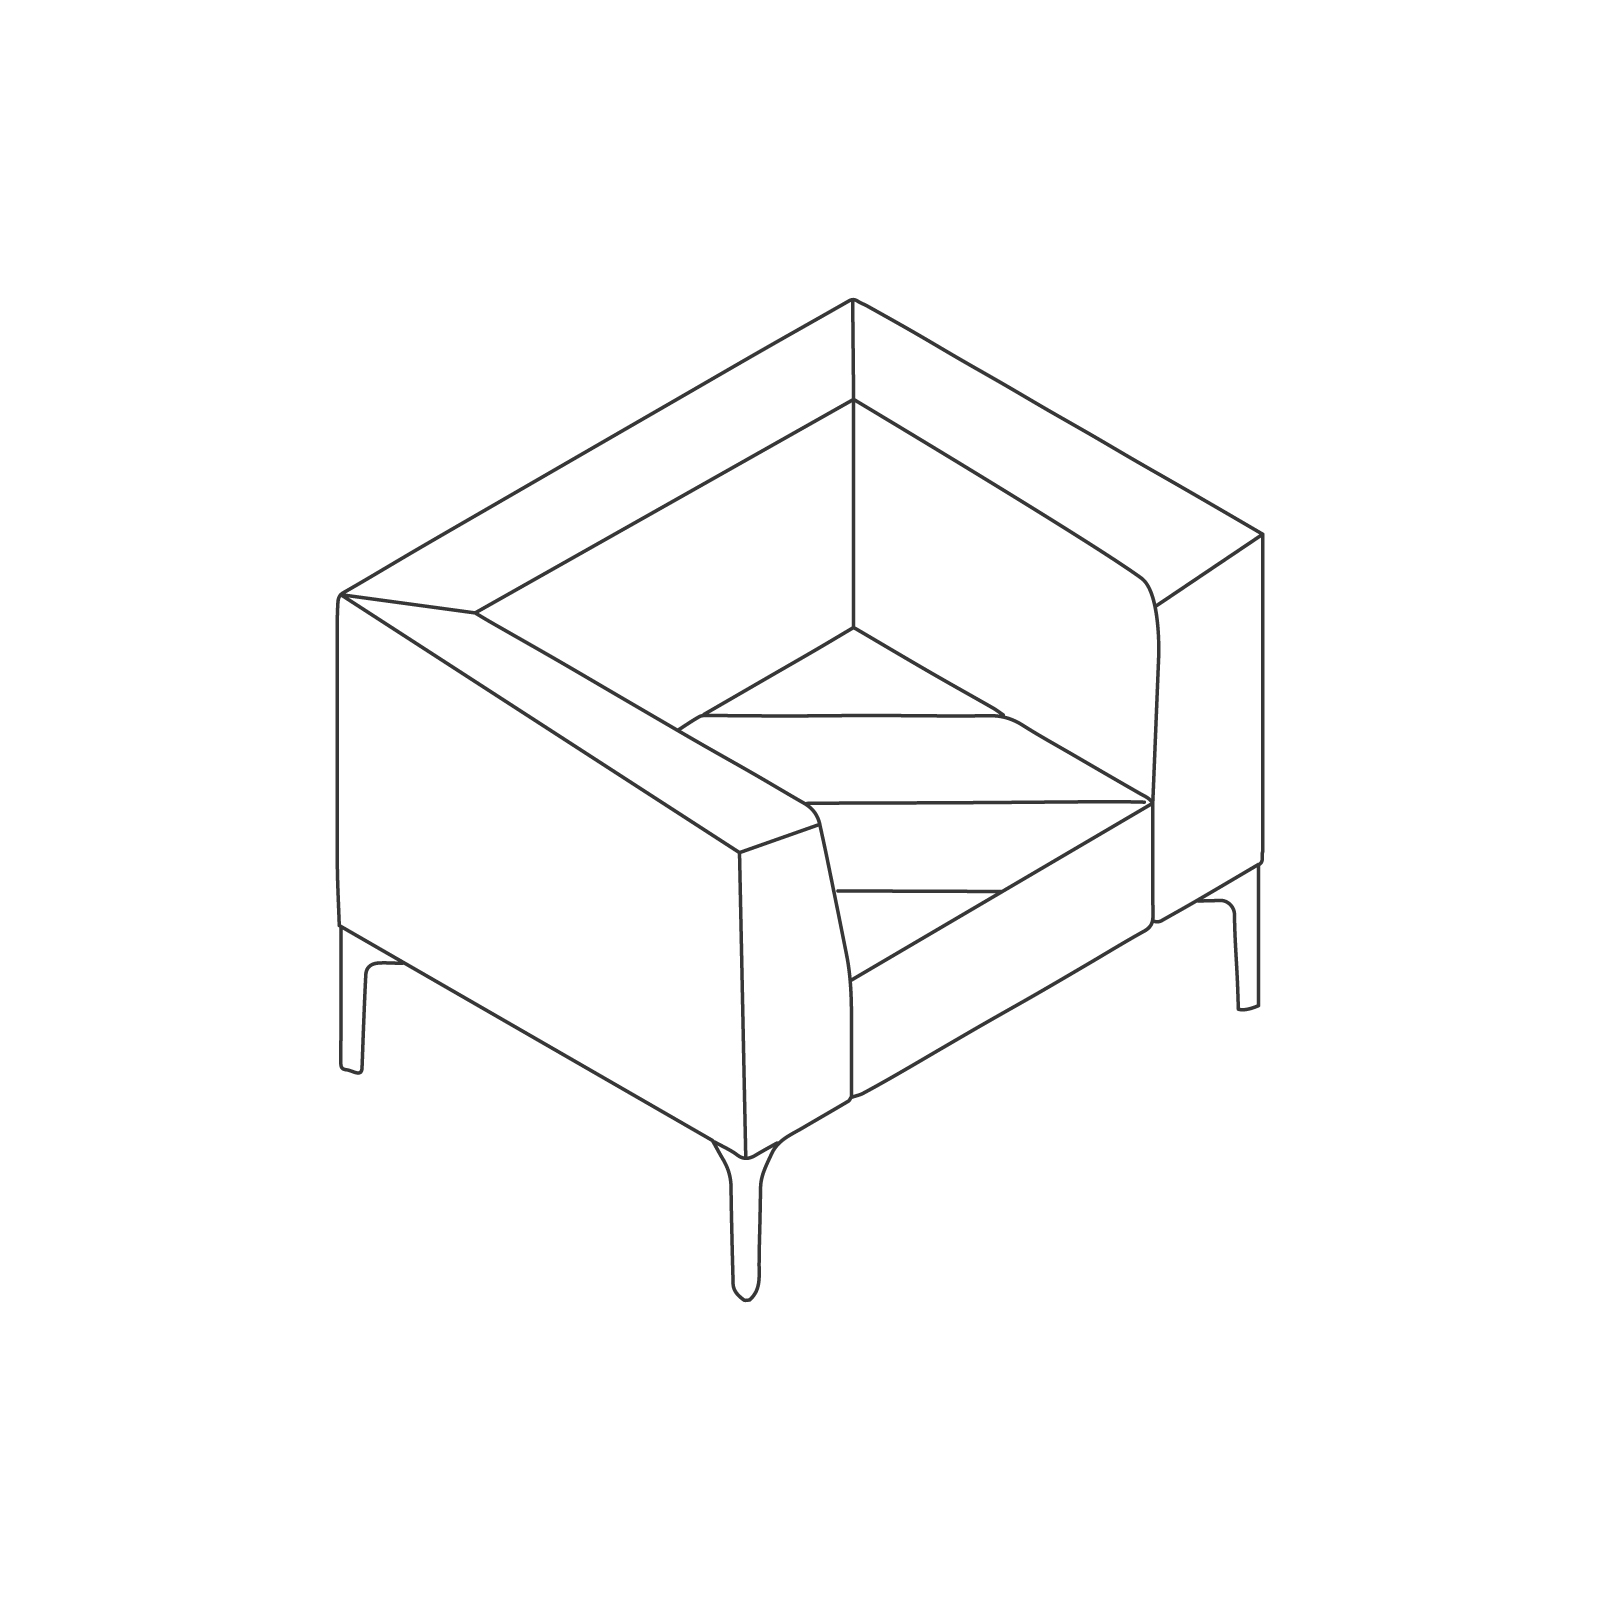 A line drawing of Hatch Lounge Chair.